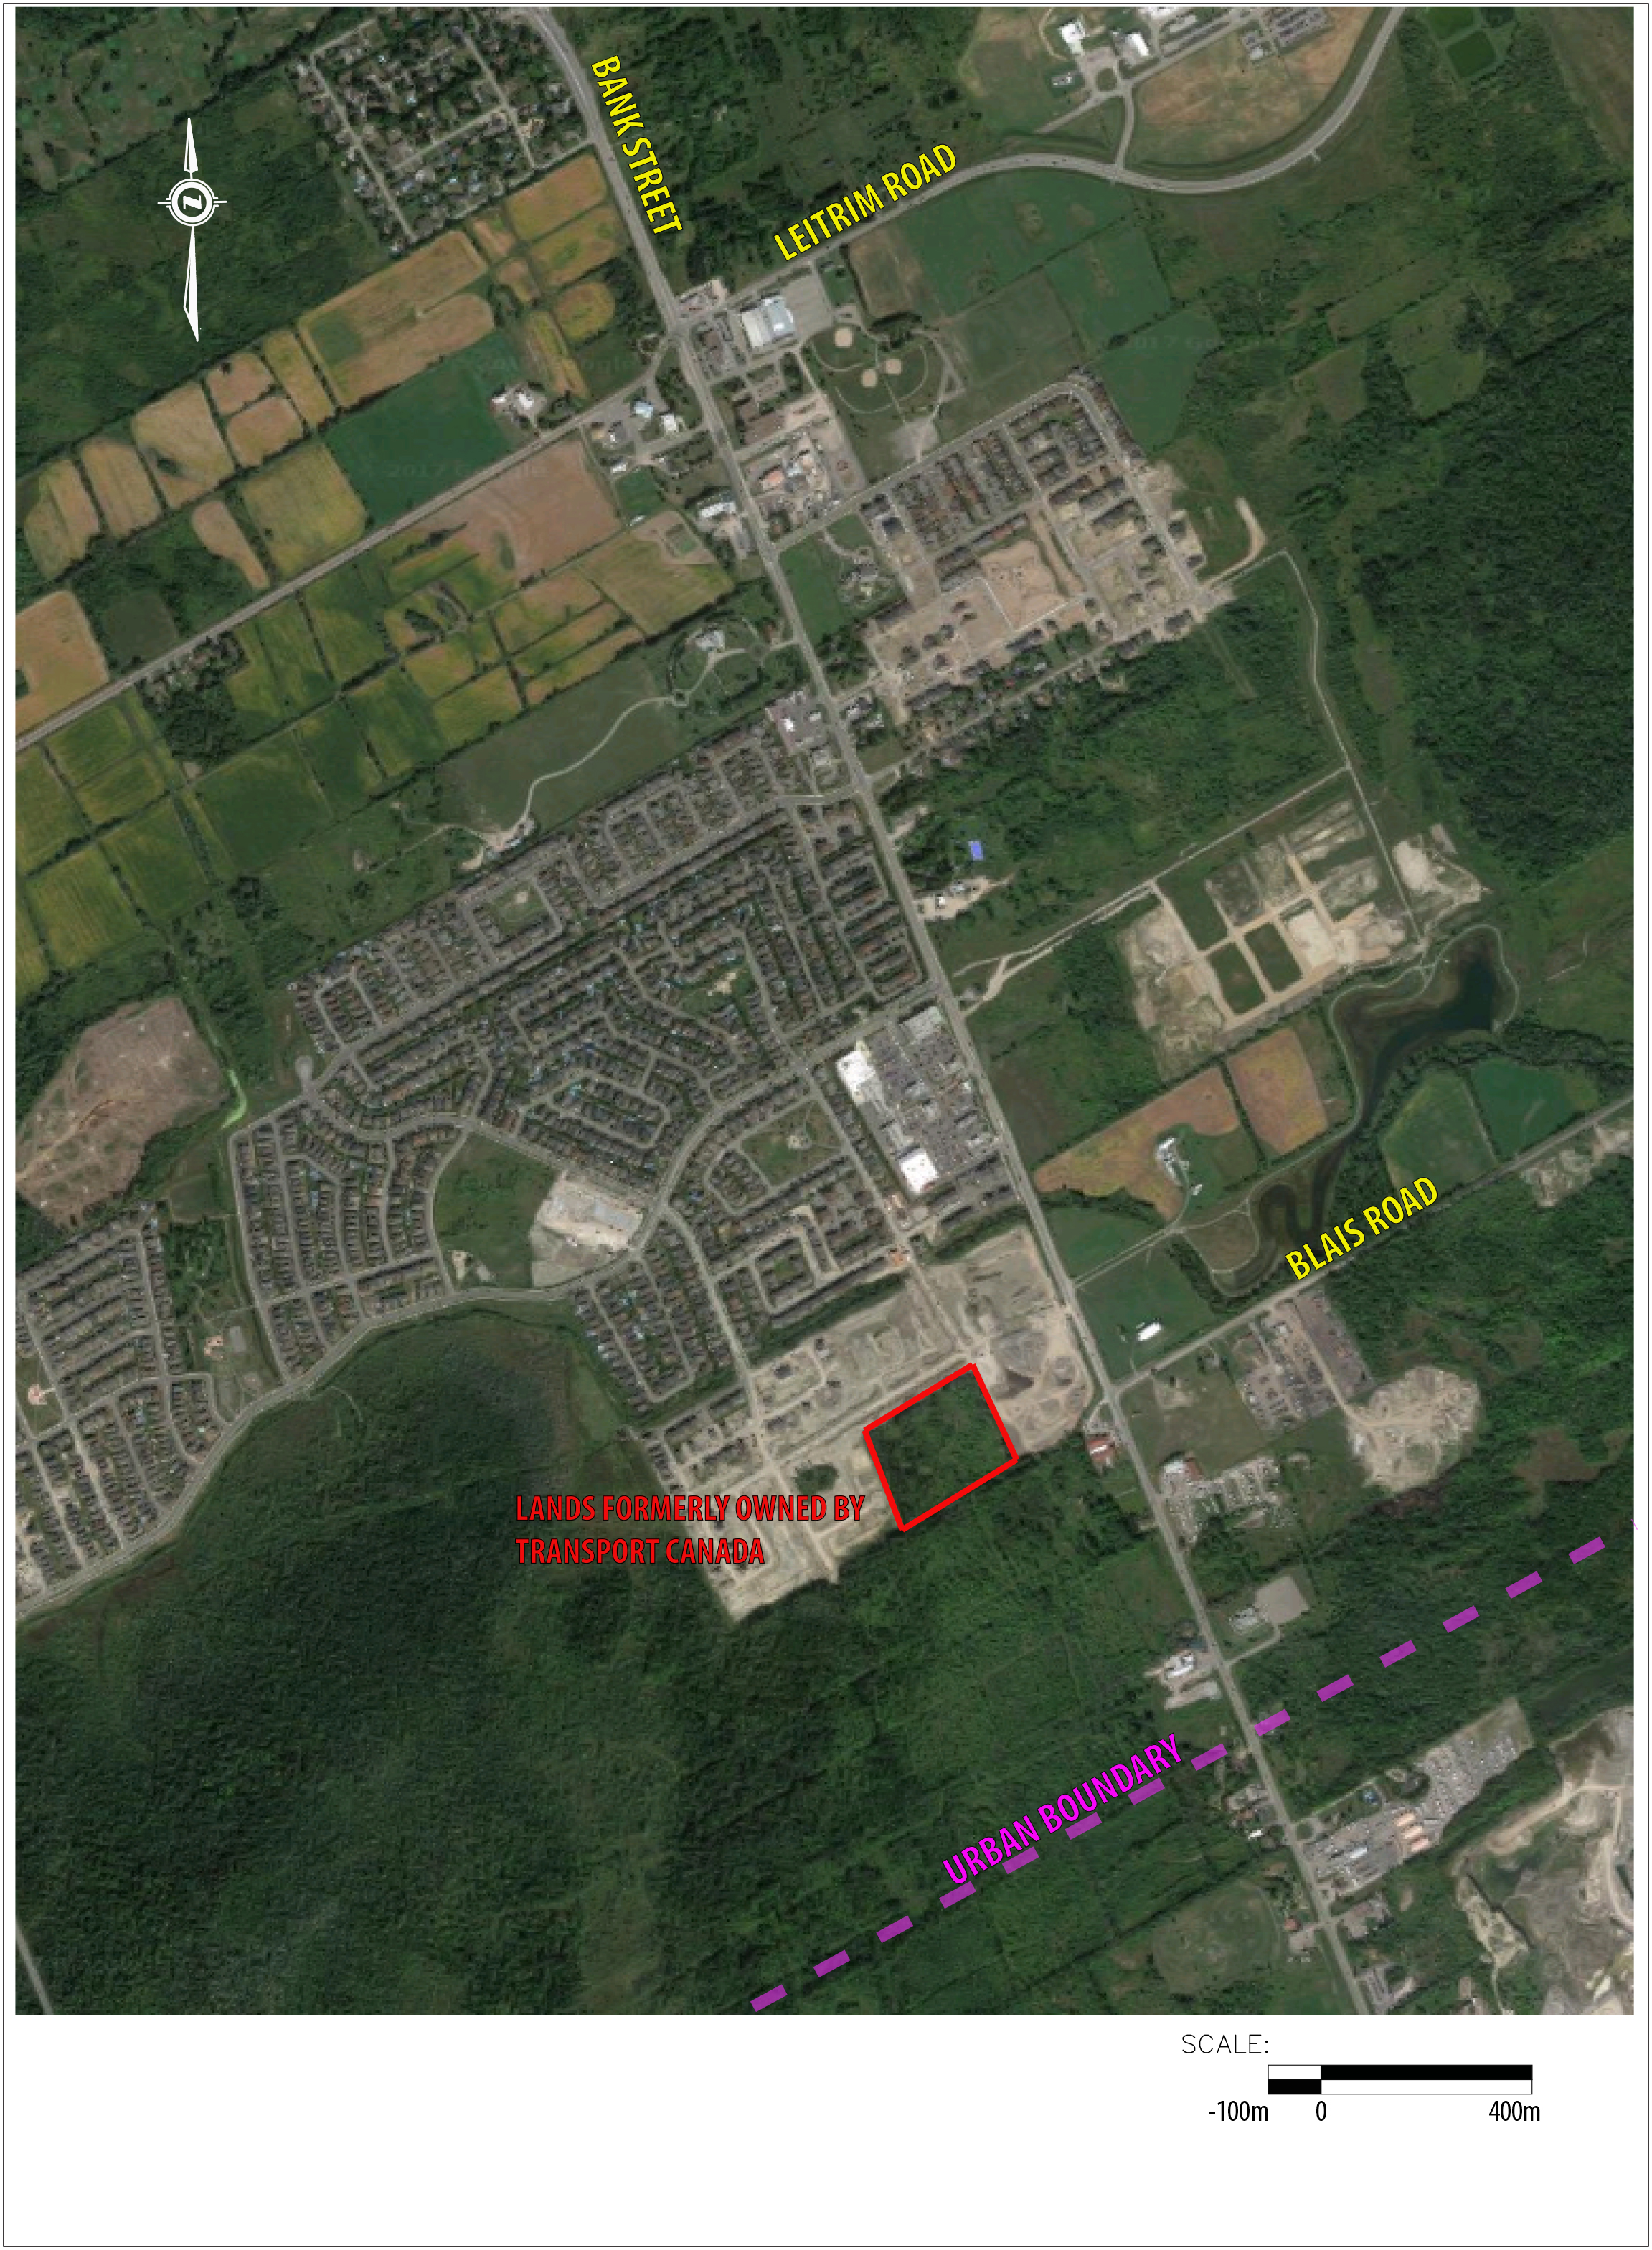 This image shows the intersection of Bank Street and Blais Road in south Ottawa. It is a vacant parcel and comprised of 10 acres (4.05 hectares) of land.